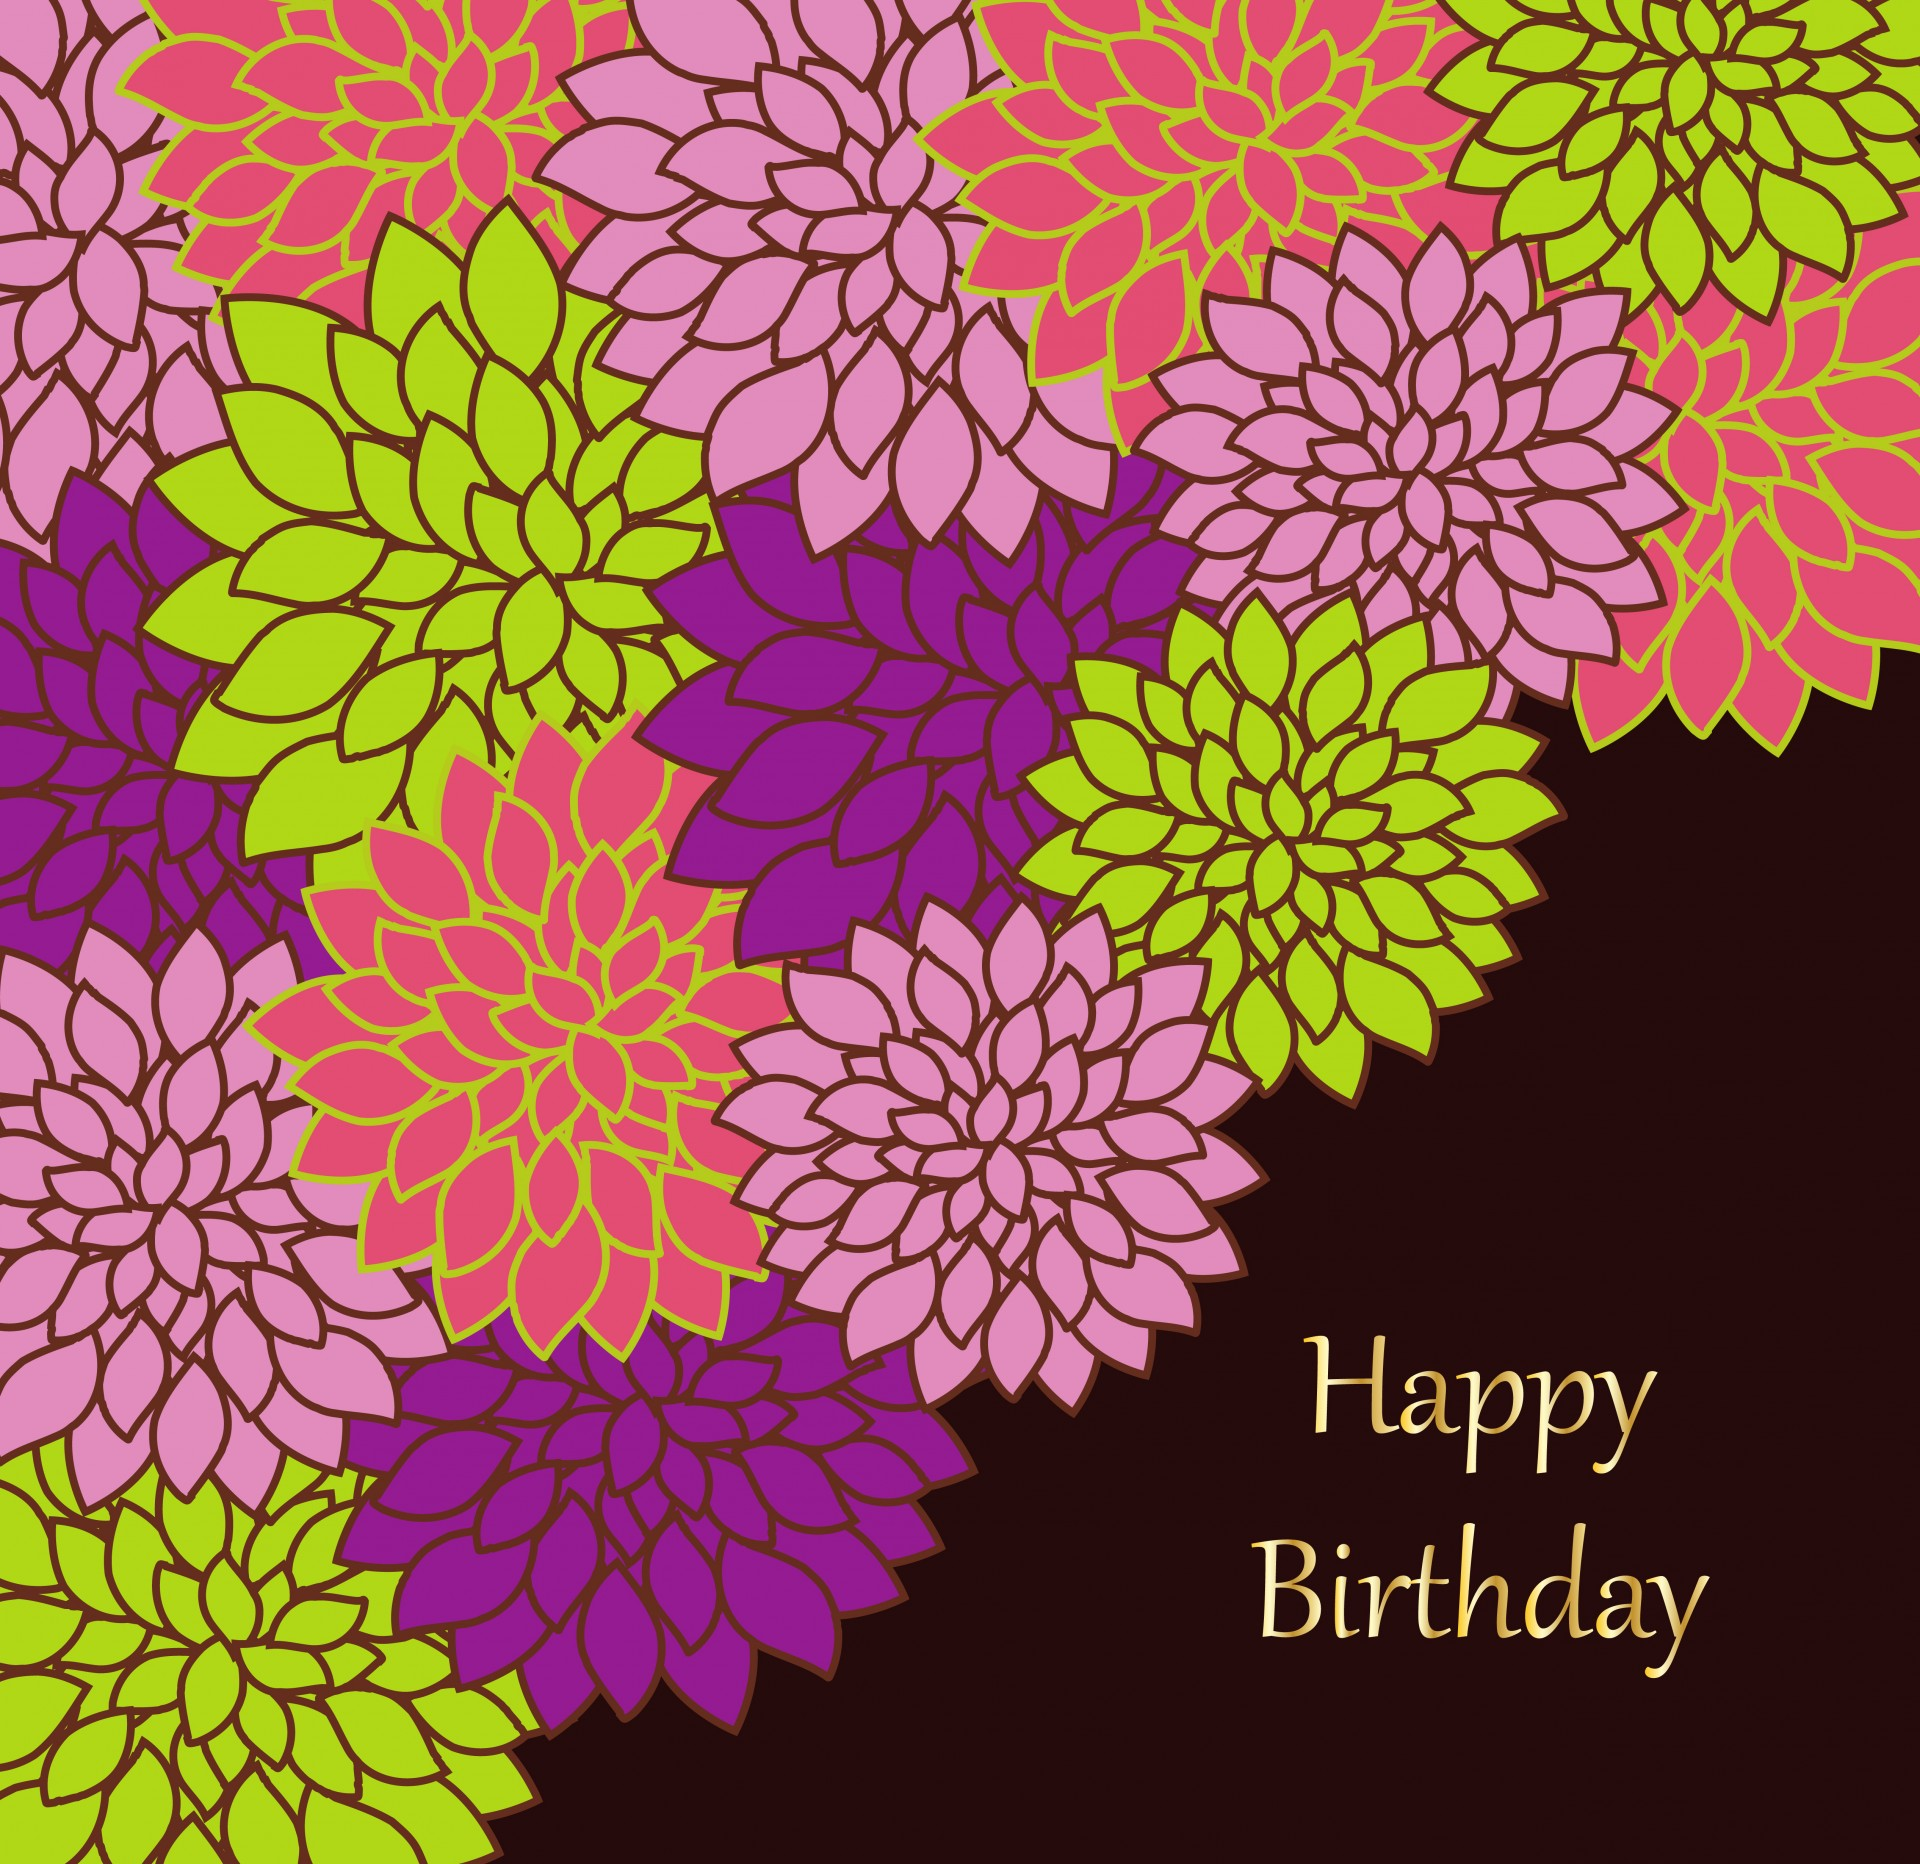 free birthday card design templates ; floral-birthday-card-template